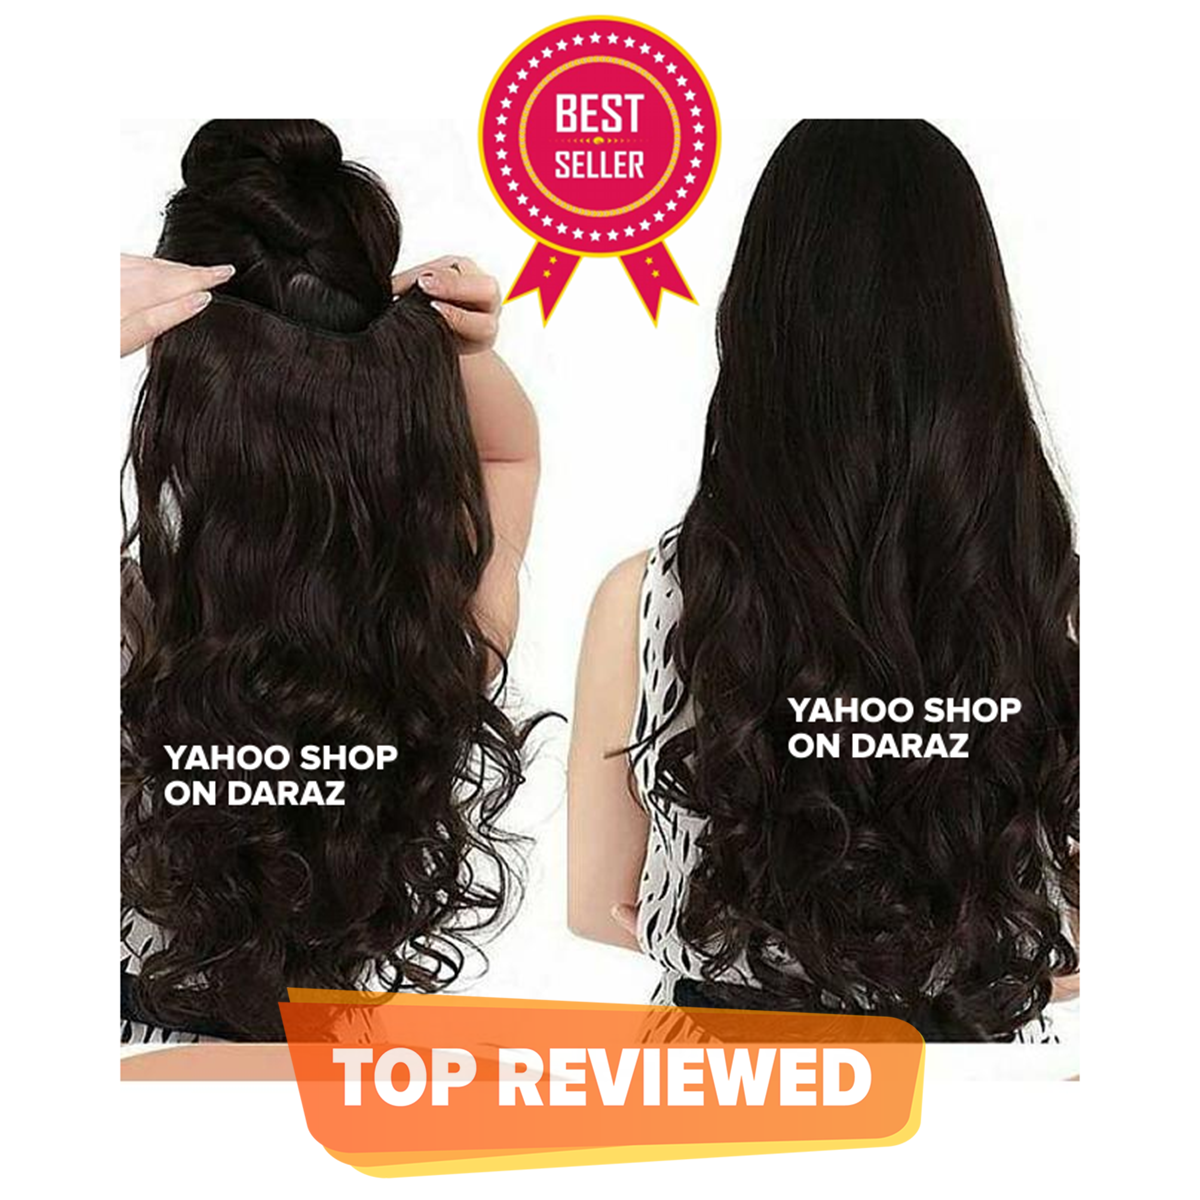 Very Long Hair Extension for Women With 5 Clips Strongly Attached No Hair Fall Washable Reuseable - Black     Makes hair look gorgeous     Easy to use     Makes hair look trendy